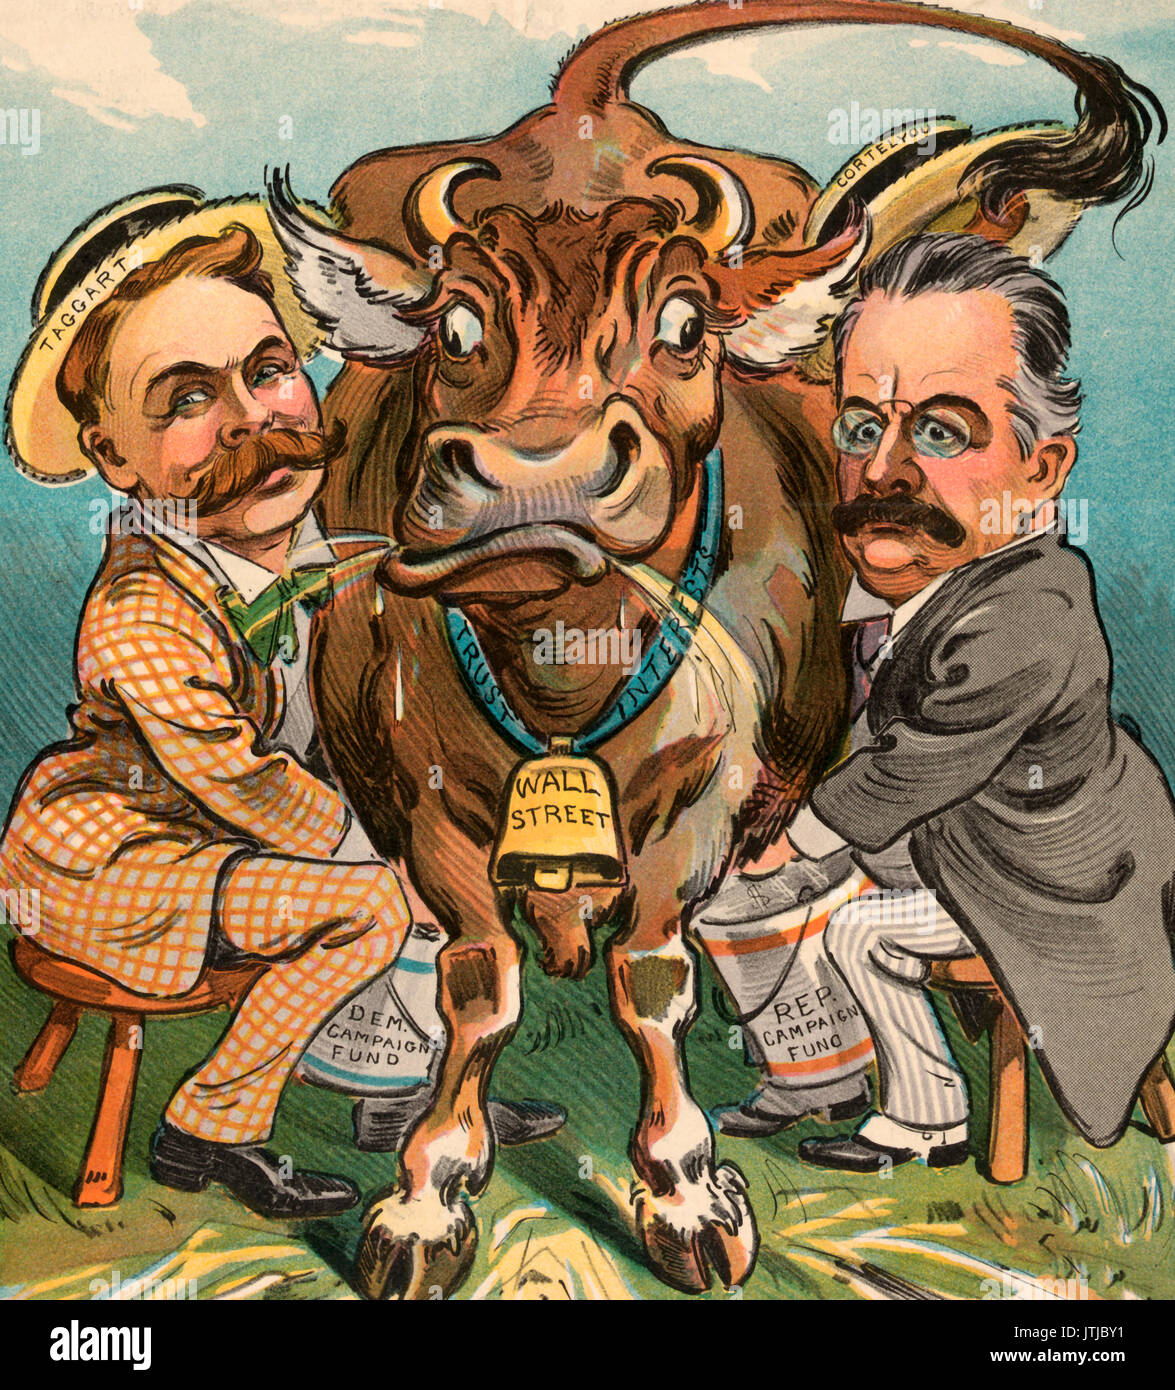 Milking time -  Illustration shows Thomas Taggart, Democratic National Committee chairman, on the left, and George B. Cortelyou, Republican National Committee chairman, on the right, milking a cow into buckets labeled 'Dem. Campaign Fund' and 'Rep. Campaign Fund'. A bell labeled 'Wall Street' hangs from a ribbon labeled 'Trust Interests' around the cows neck. Political Cartoon, 1904 - Stock Image